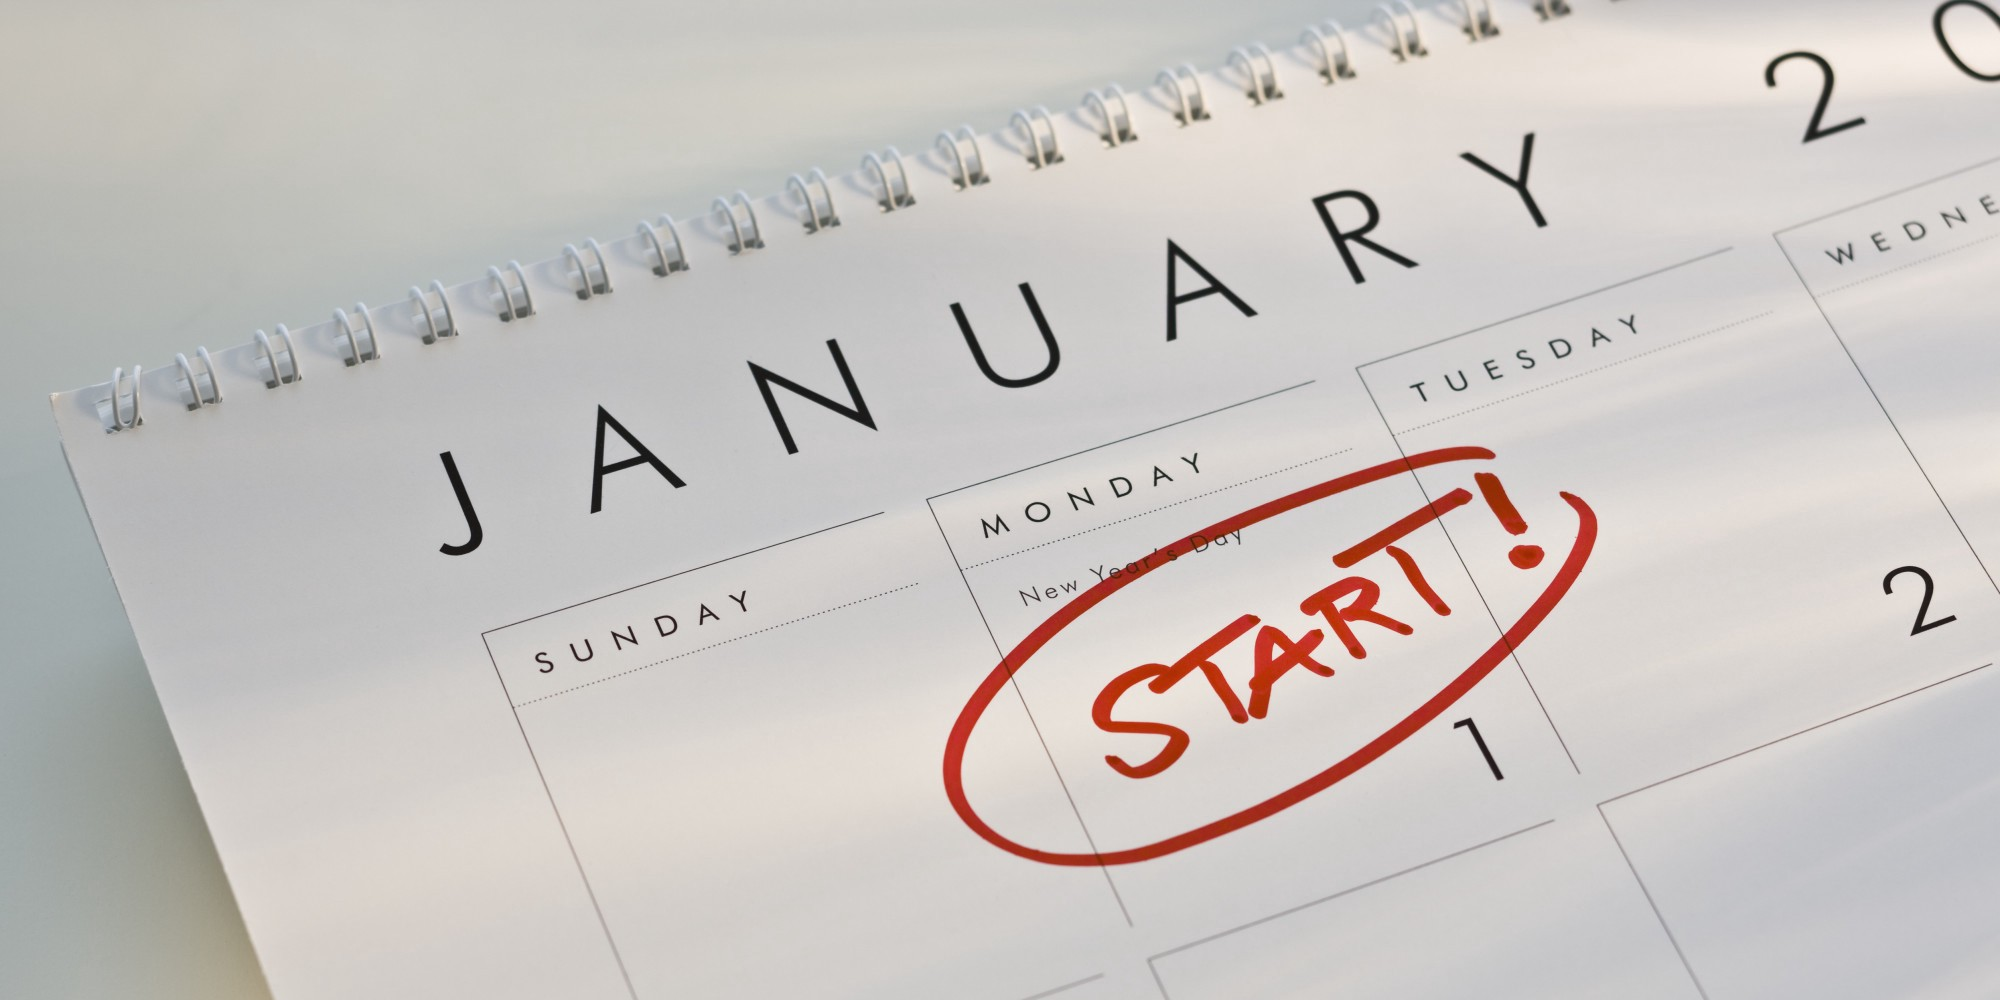 How To Not Fail With Your New Year's Resolutions